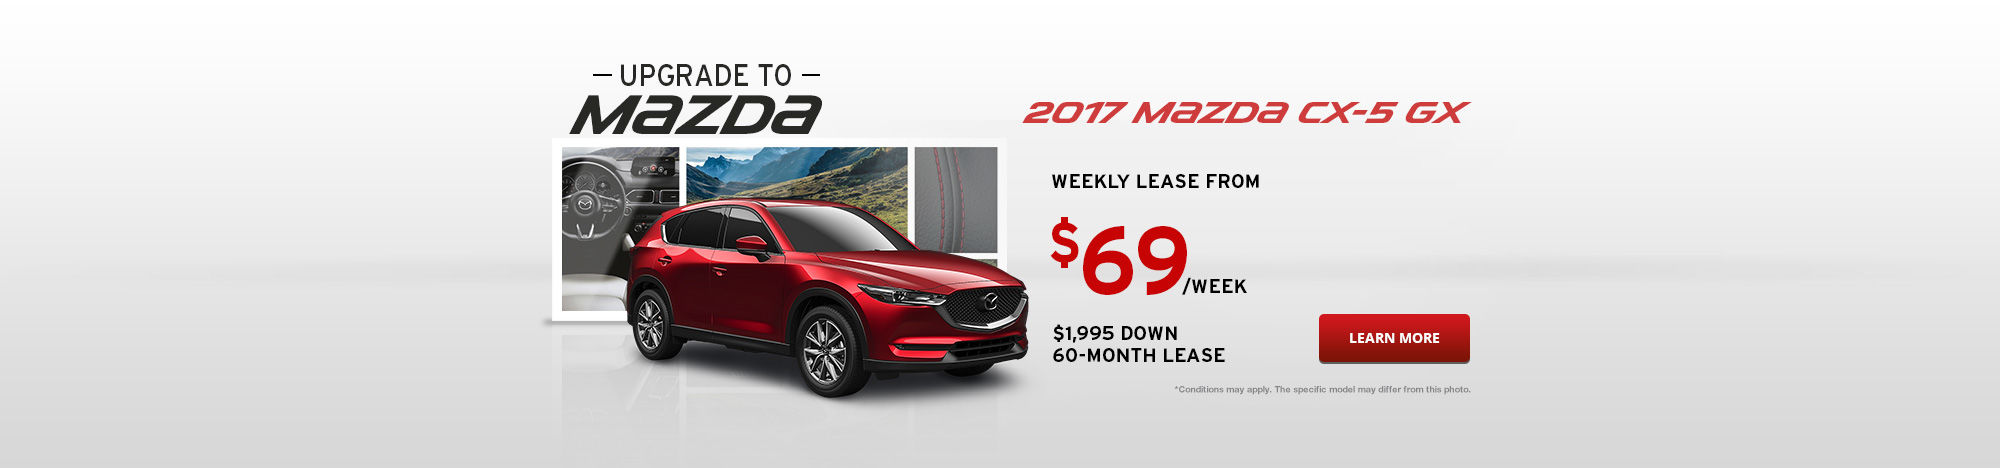 Upgrade To Mazda September - CX-5